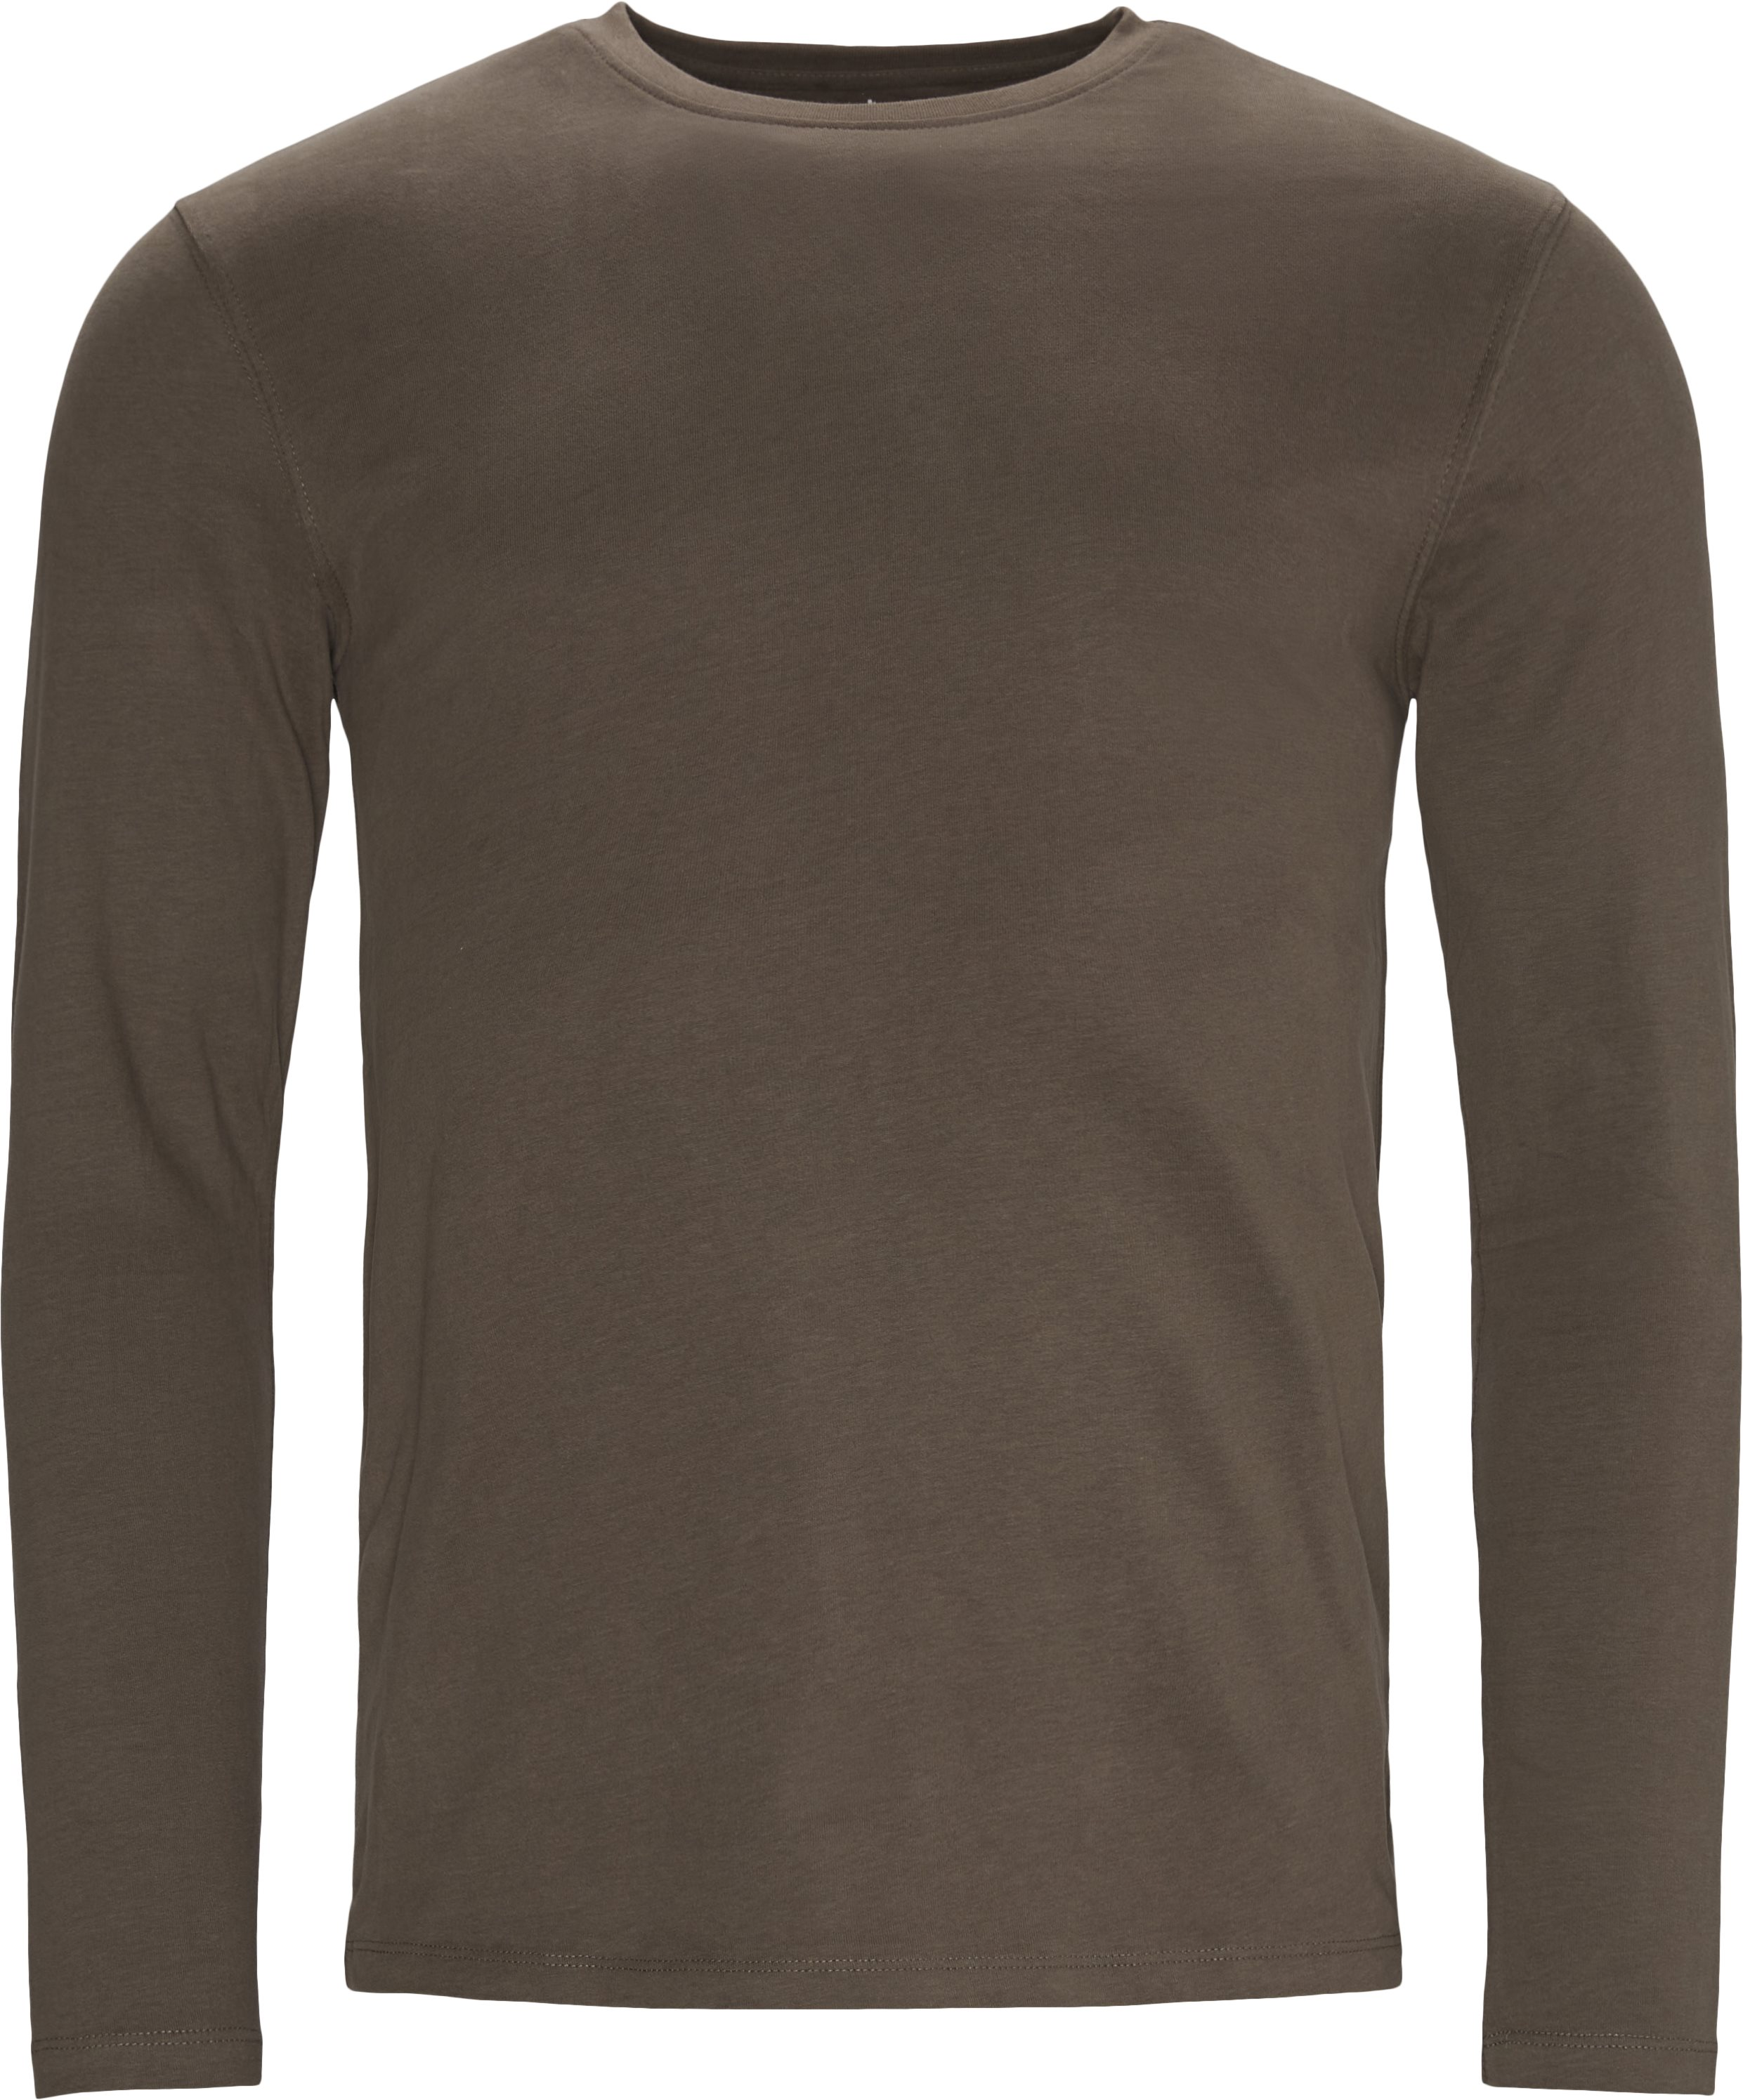 Ray Long Sleeve Tee - T-shirts - Regular - Army